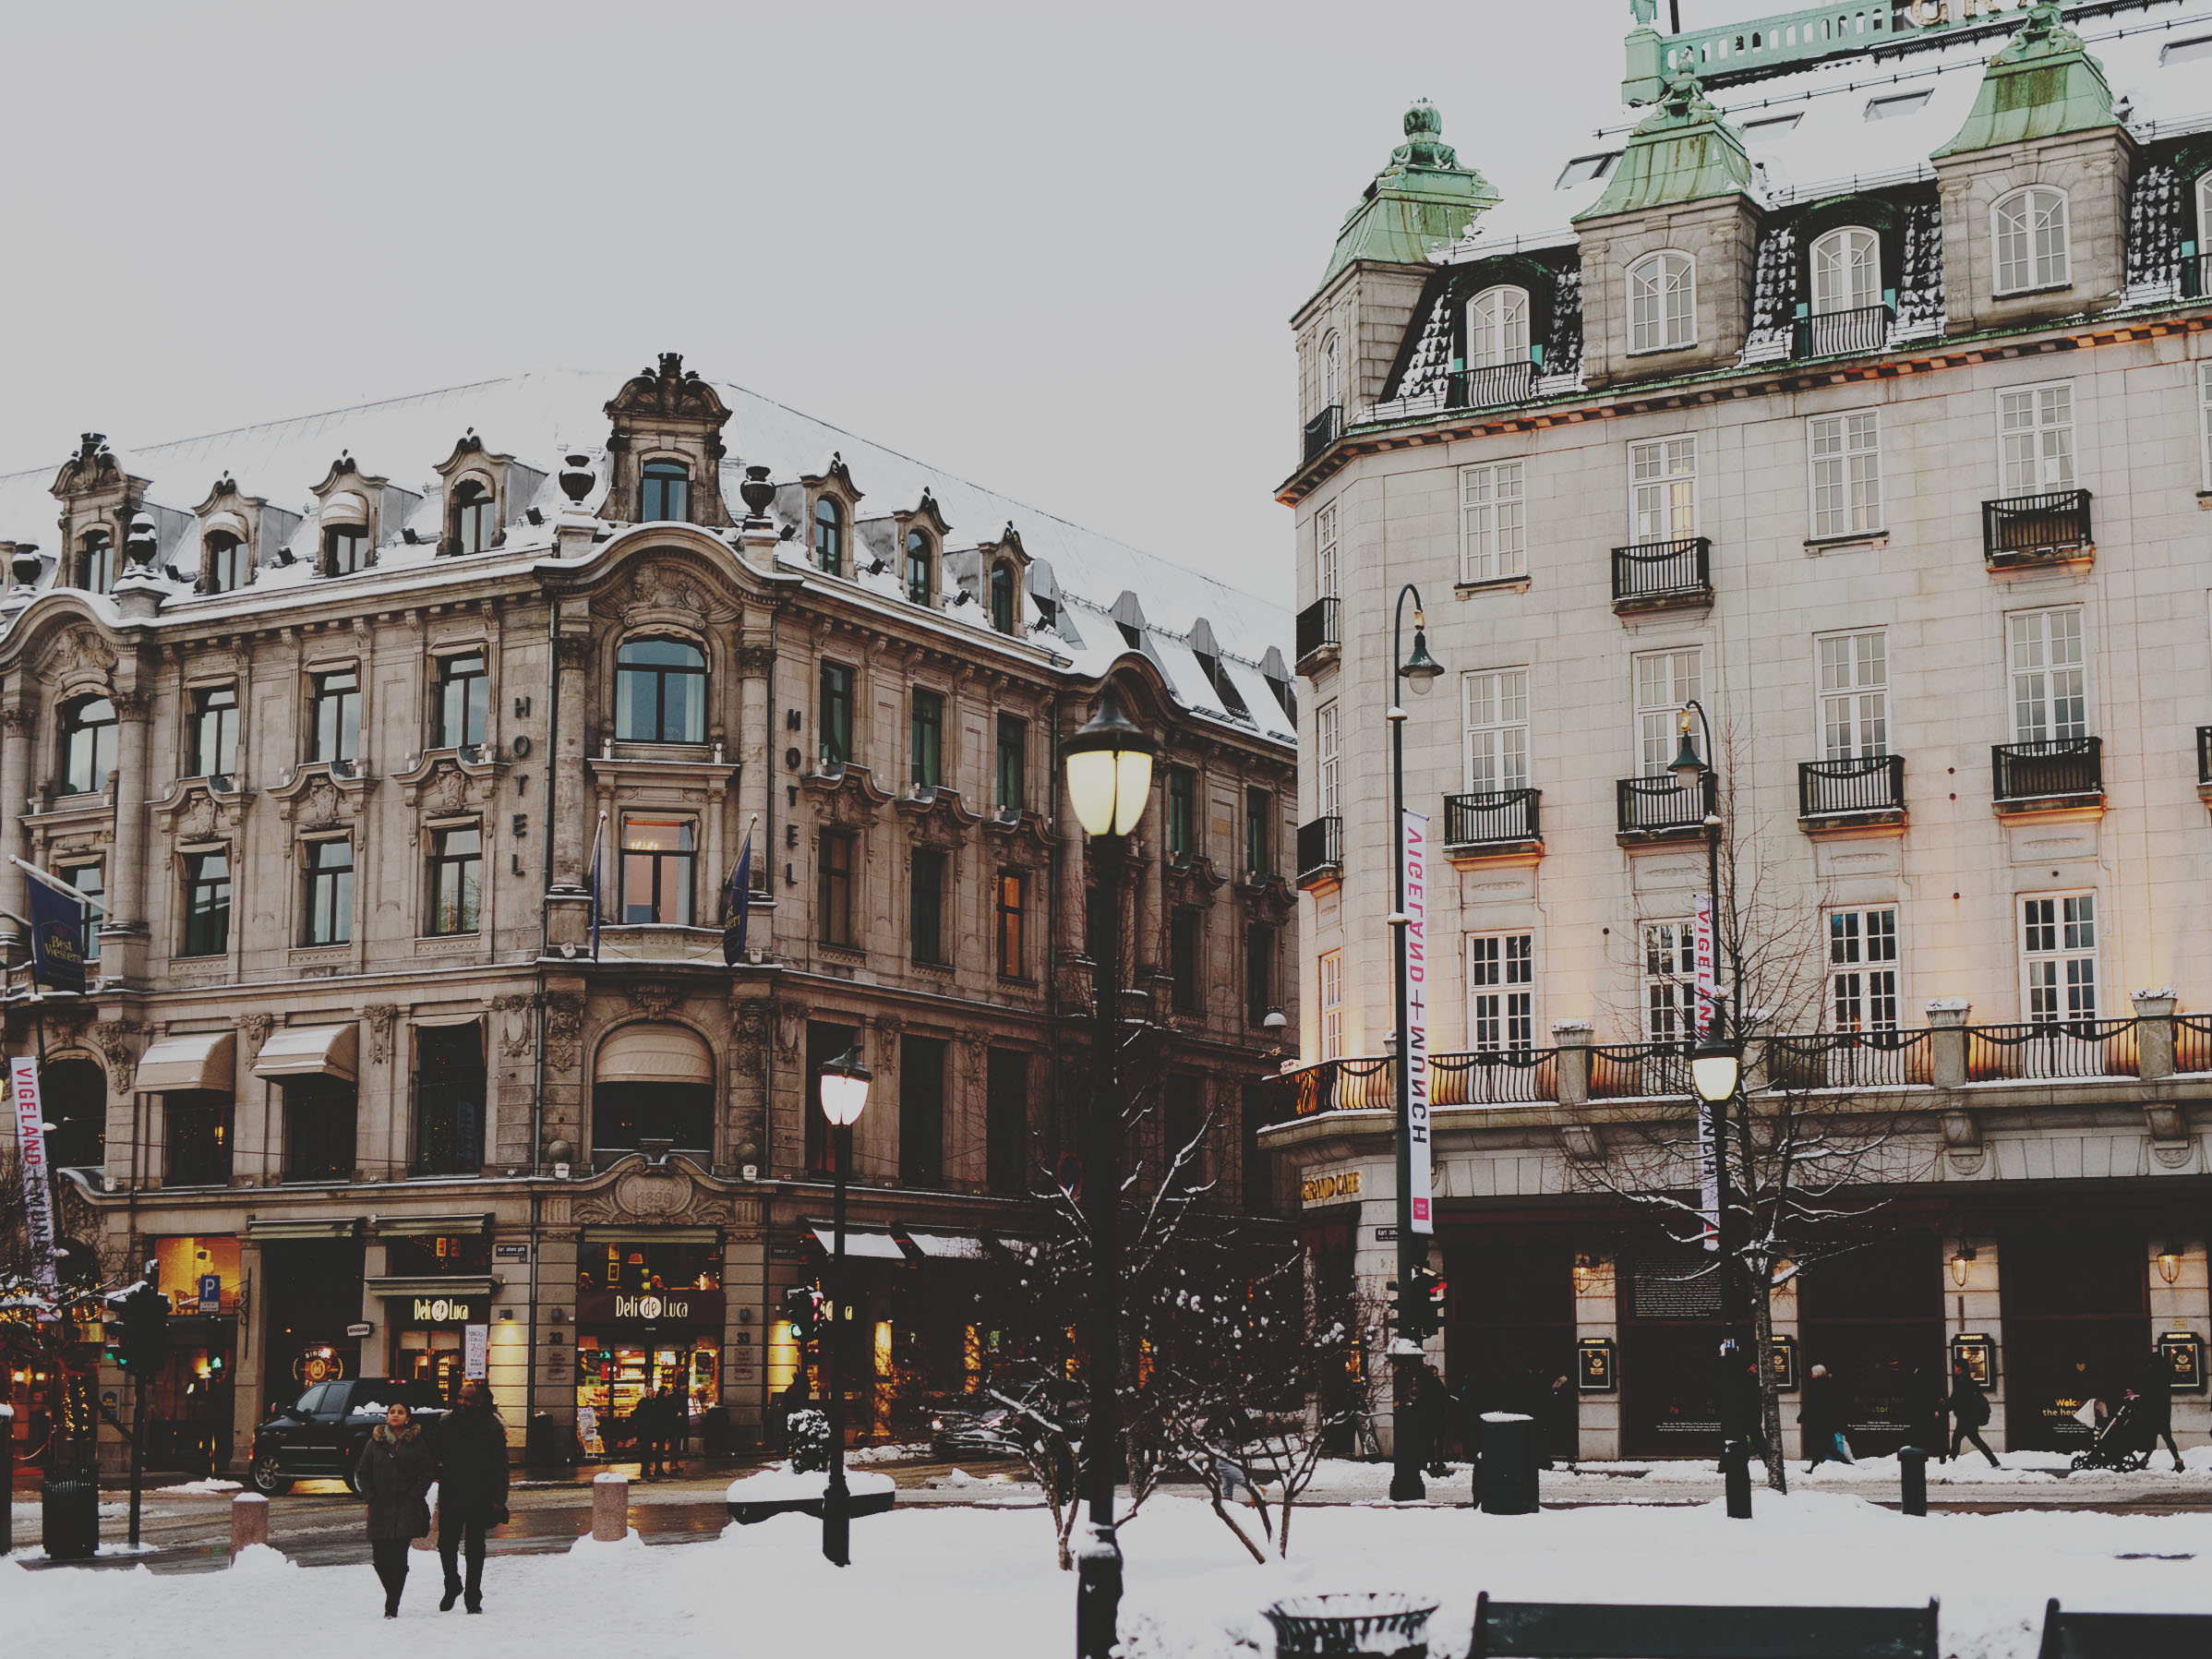 Karl Johans gate a cold winter's day in Oslo, Norway.